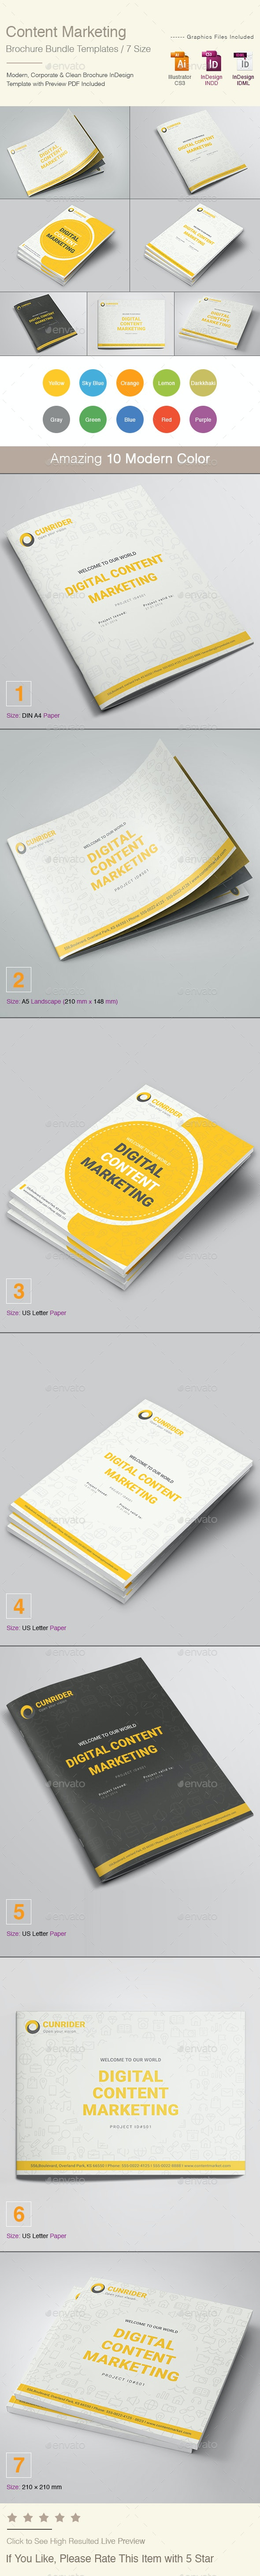 Content Marketing Brochure Bundle - Corporate Brochures